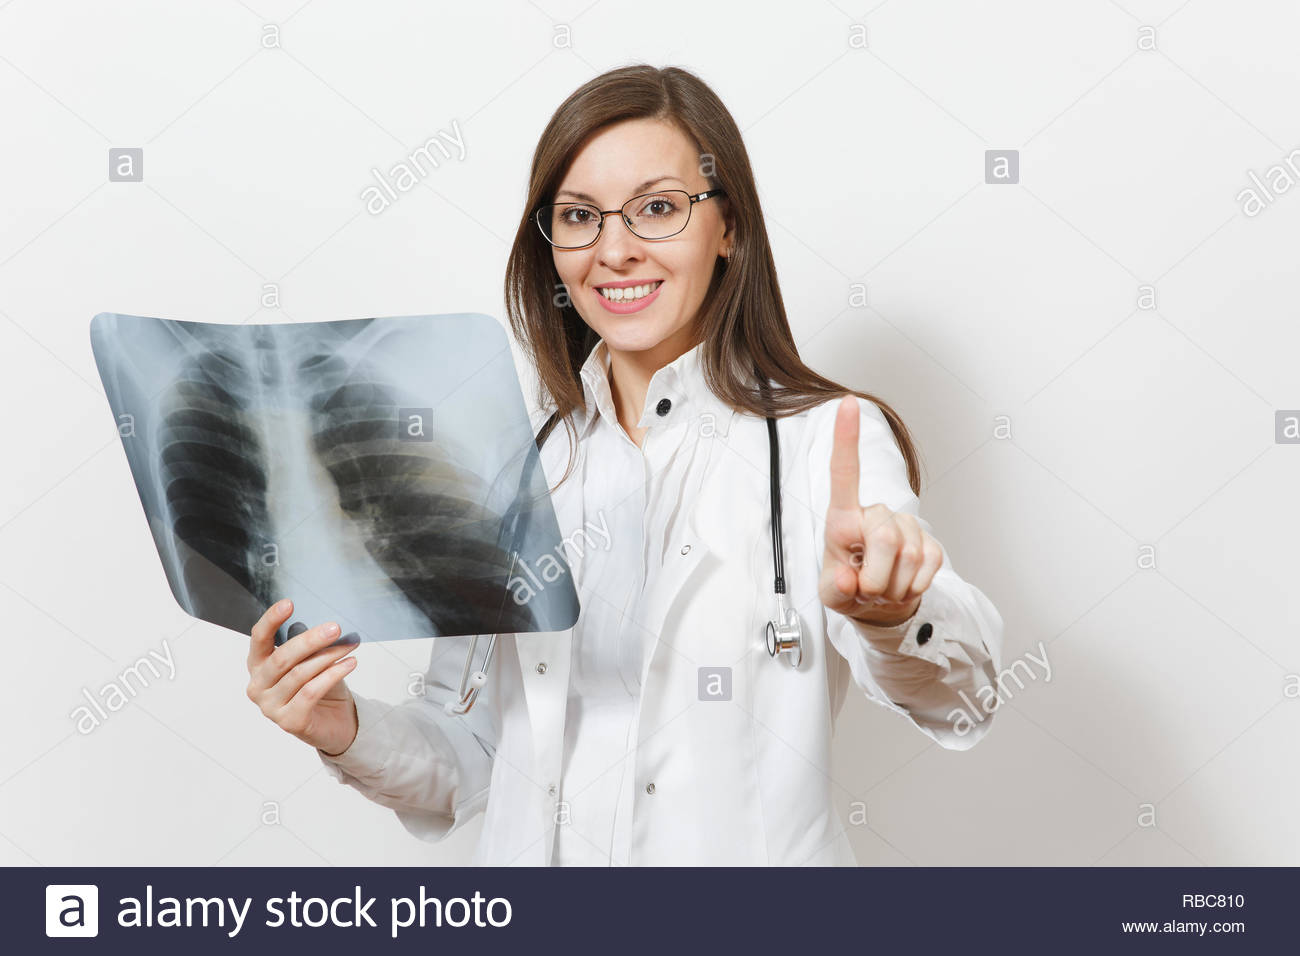 Doctor woman touch something like click on button, X-ray of lungs fluorography roentgen isolated on white background. Female doctor in medical gown stethoscope glasses. Healthcare personnel. Pneumonia - Stock Image